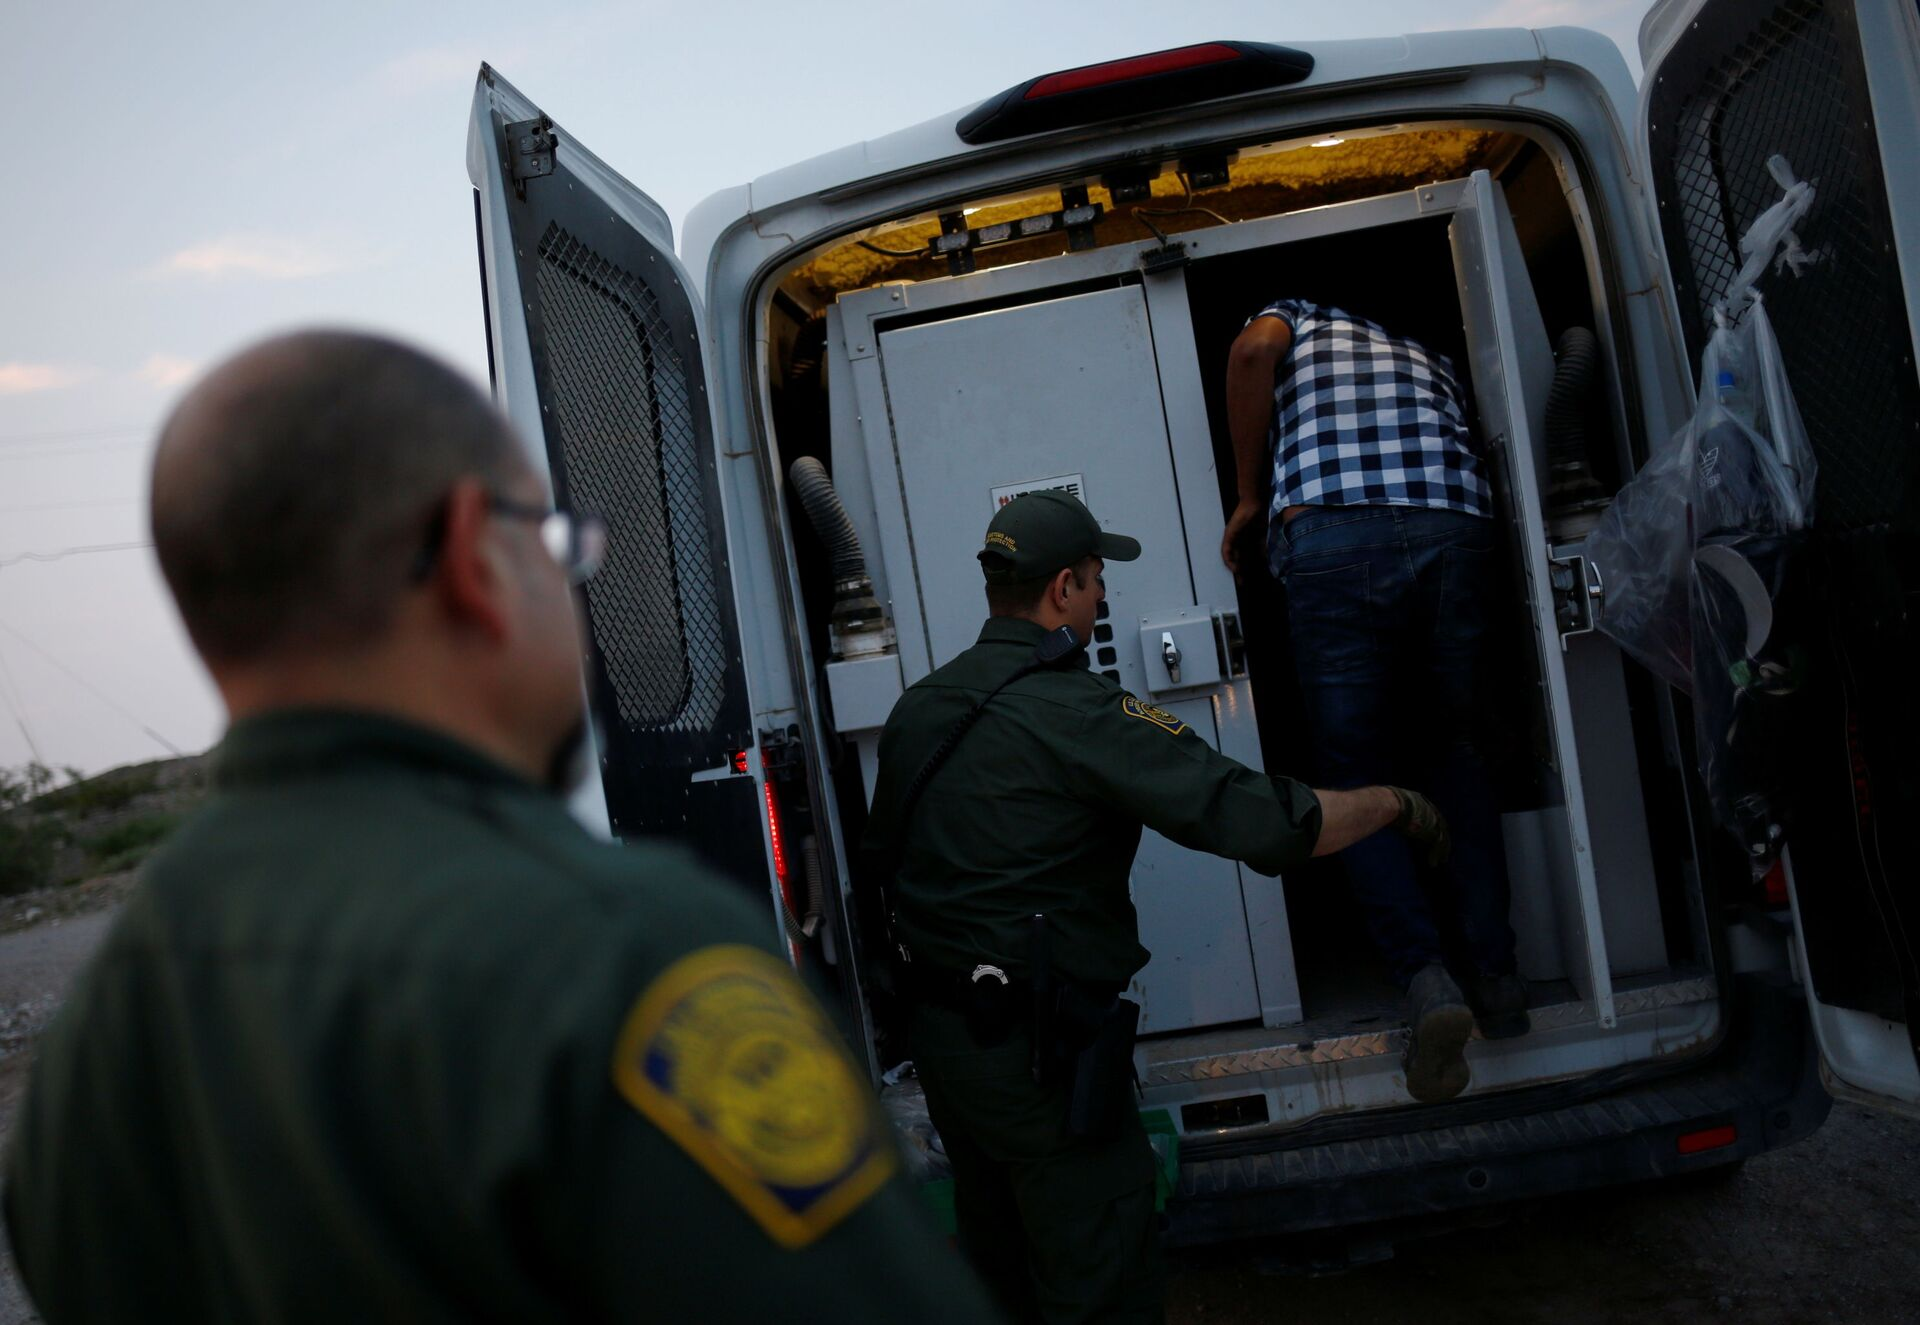 A migrant from Central America is detained by U.S. Border Patrol agents after crossing into the United States from Mexico, in Sunland Park, New Mexico, U.S., July 22, 2021 - Sputnik International, 1920, 07.09.2021